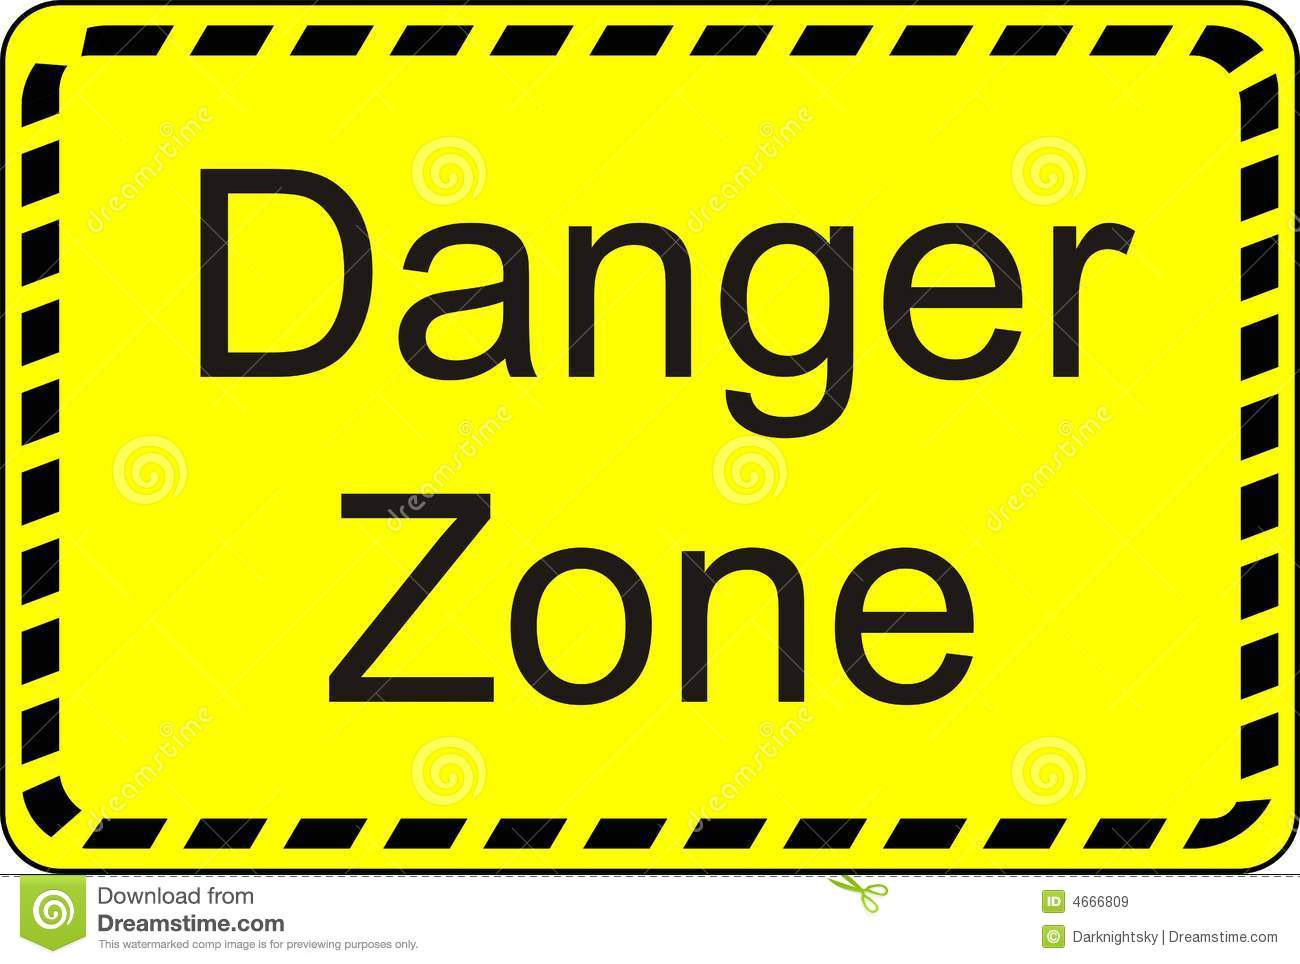 Danger Zone Royalty Free Stock Images - Image: 4666809 Under Construction Signs